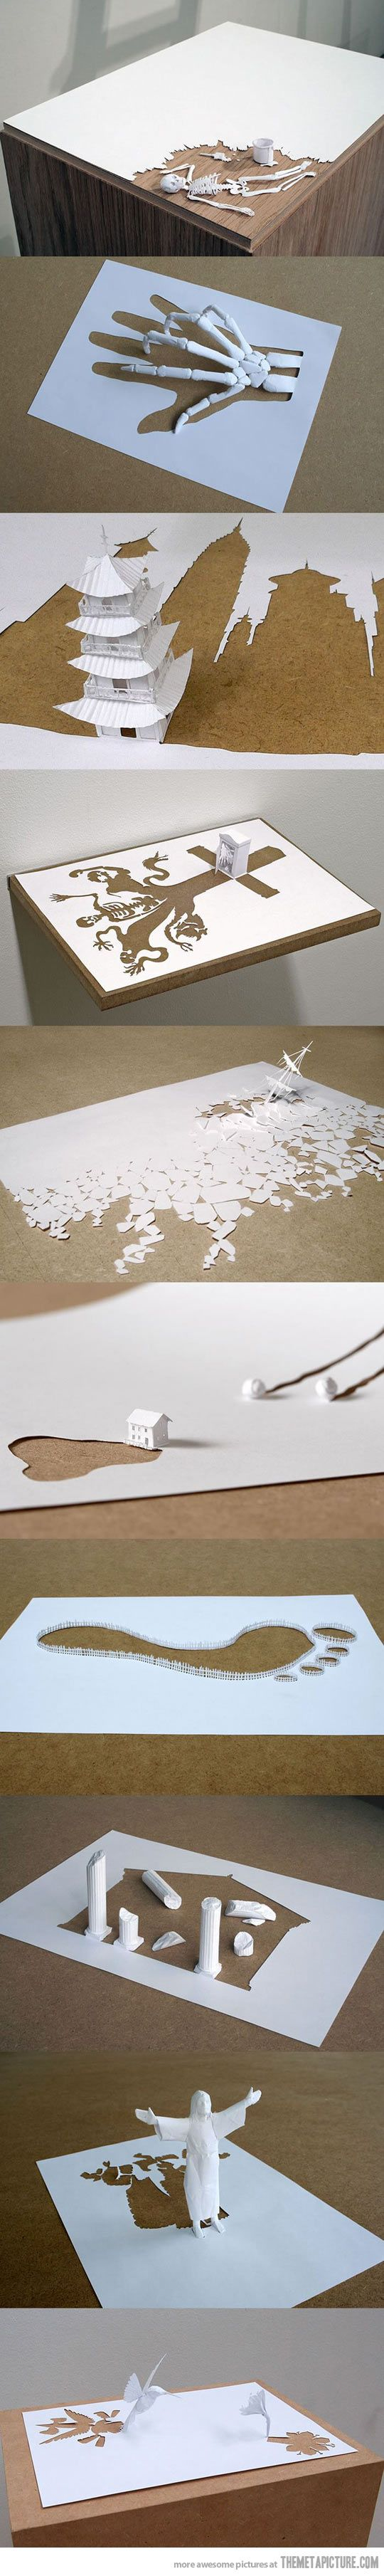 Amazing paper art by Peter Callesen...